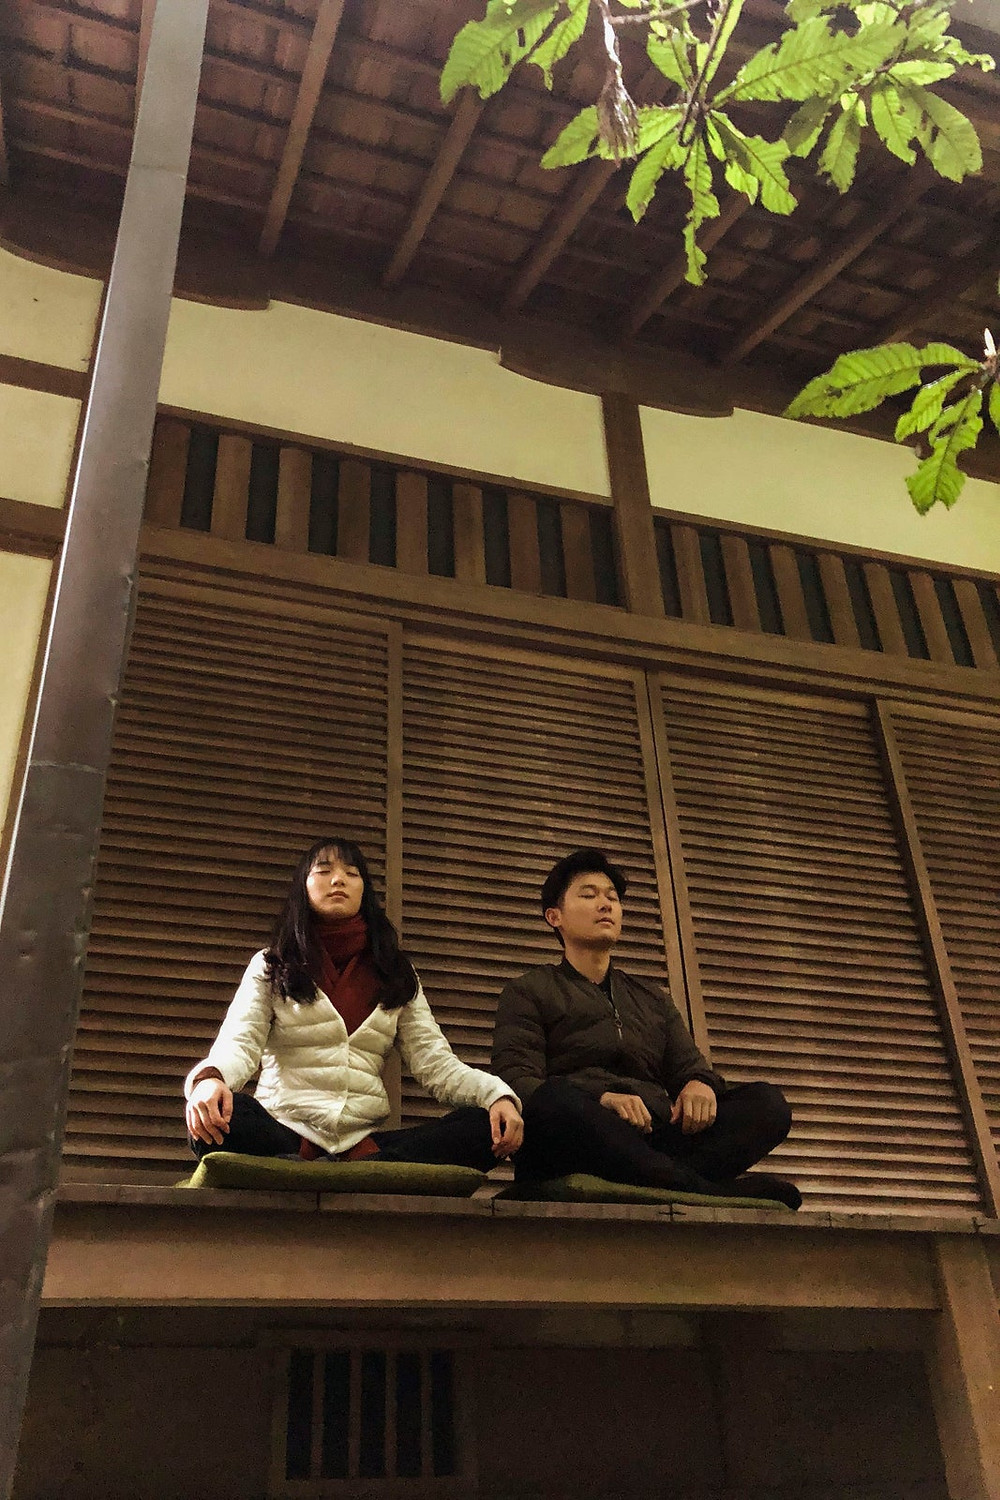 Meditation with a Japanese Buddhist Monk online experience from Airbnb